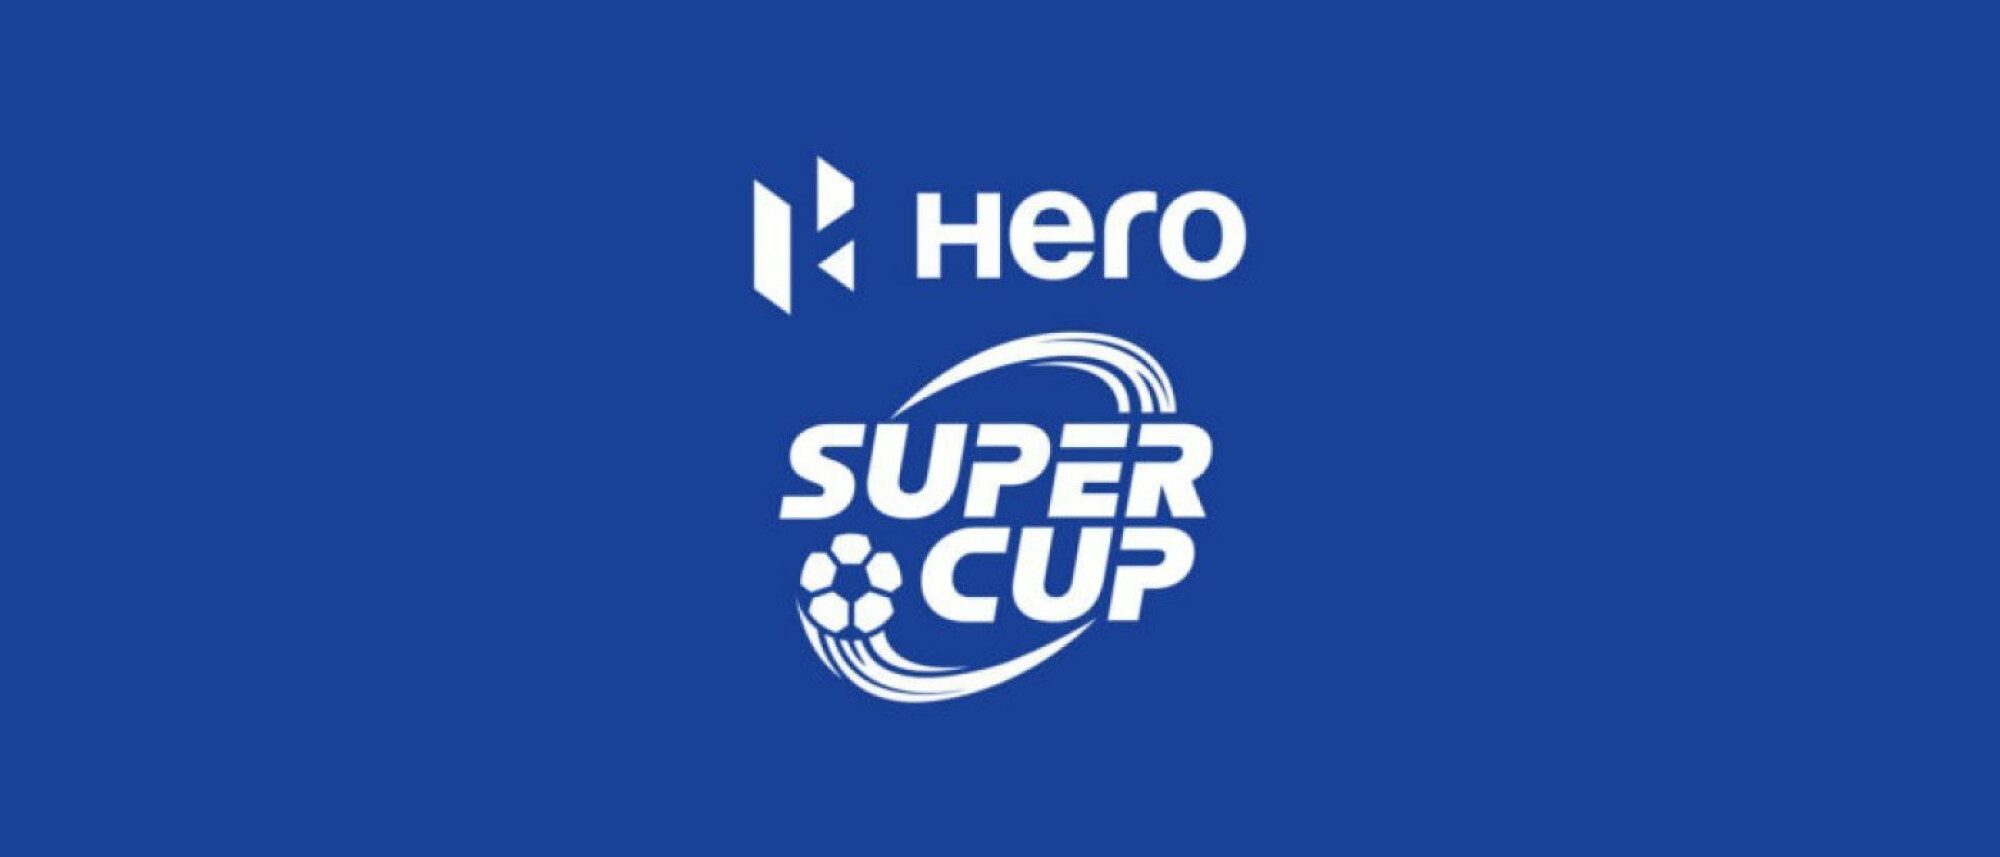 Hero Super Cup 2019: Official schedule released.